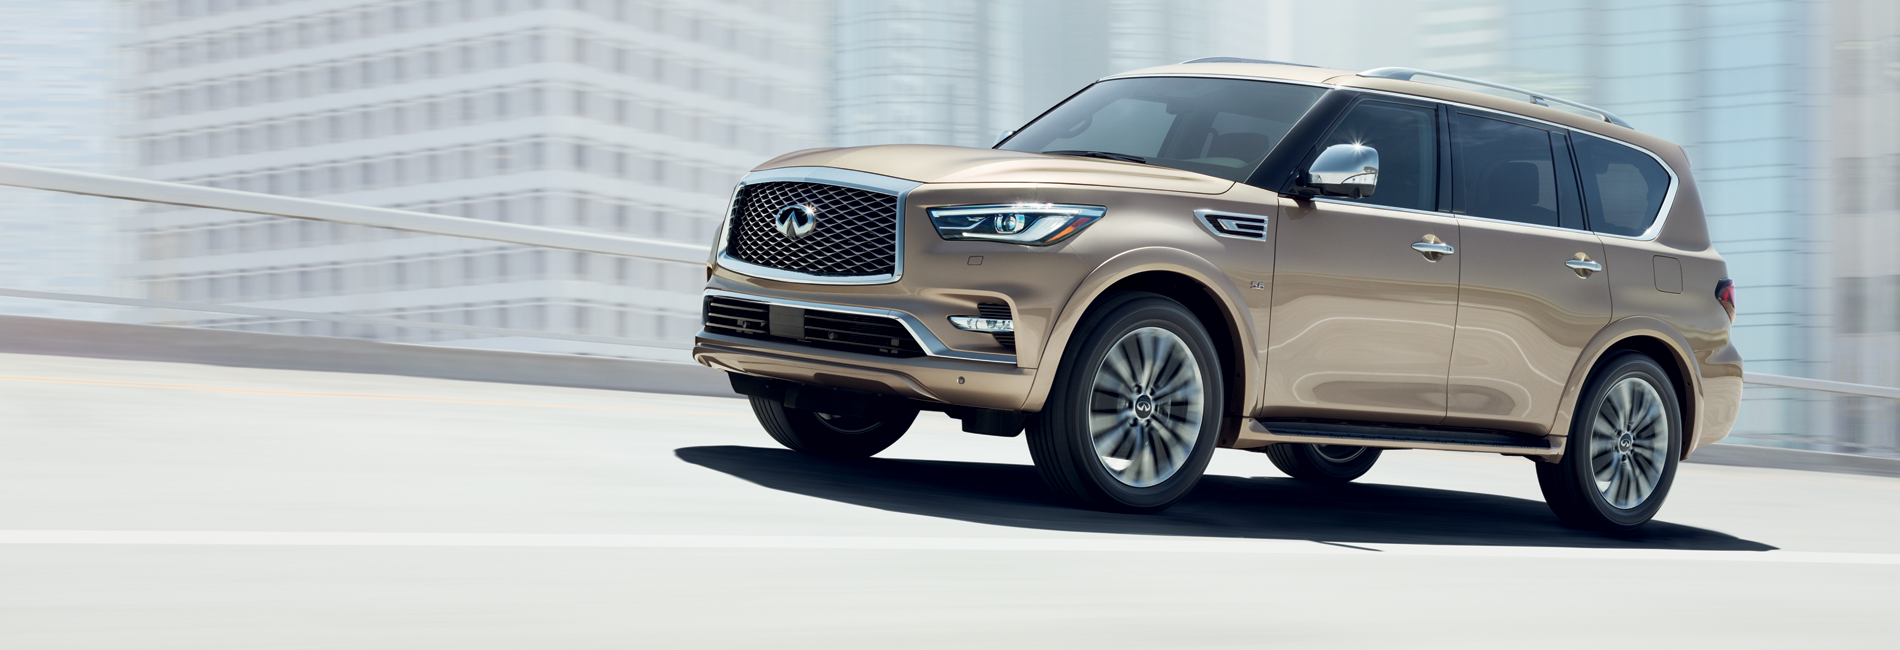 2018 INFINITI QX80 for Sale in Chicago, IL